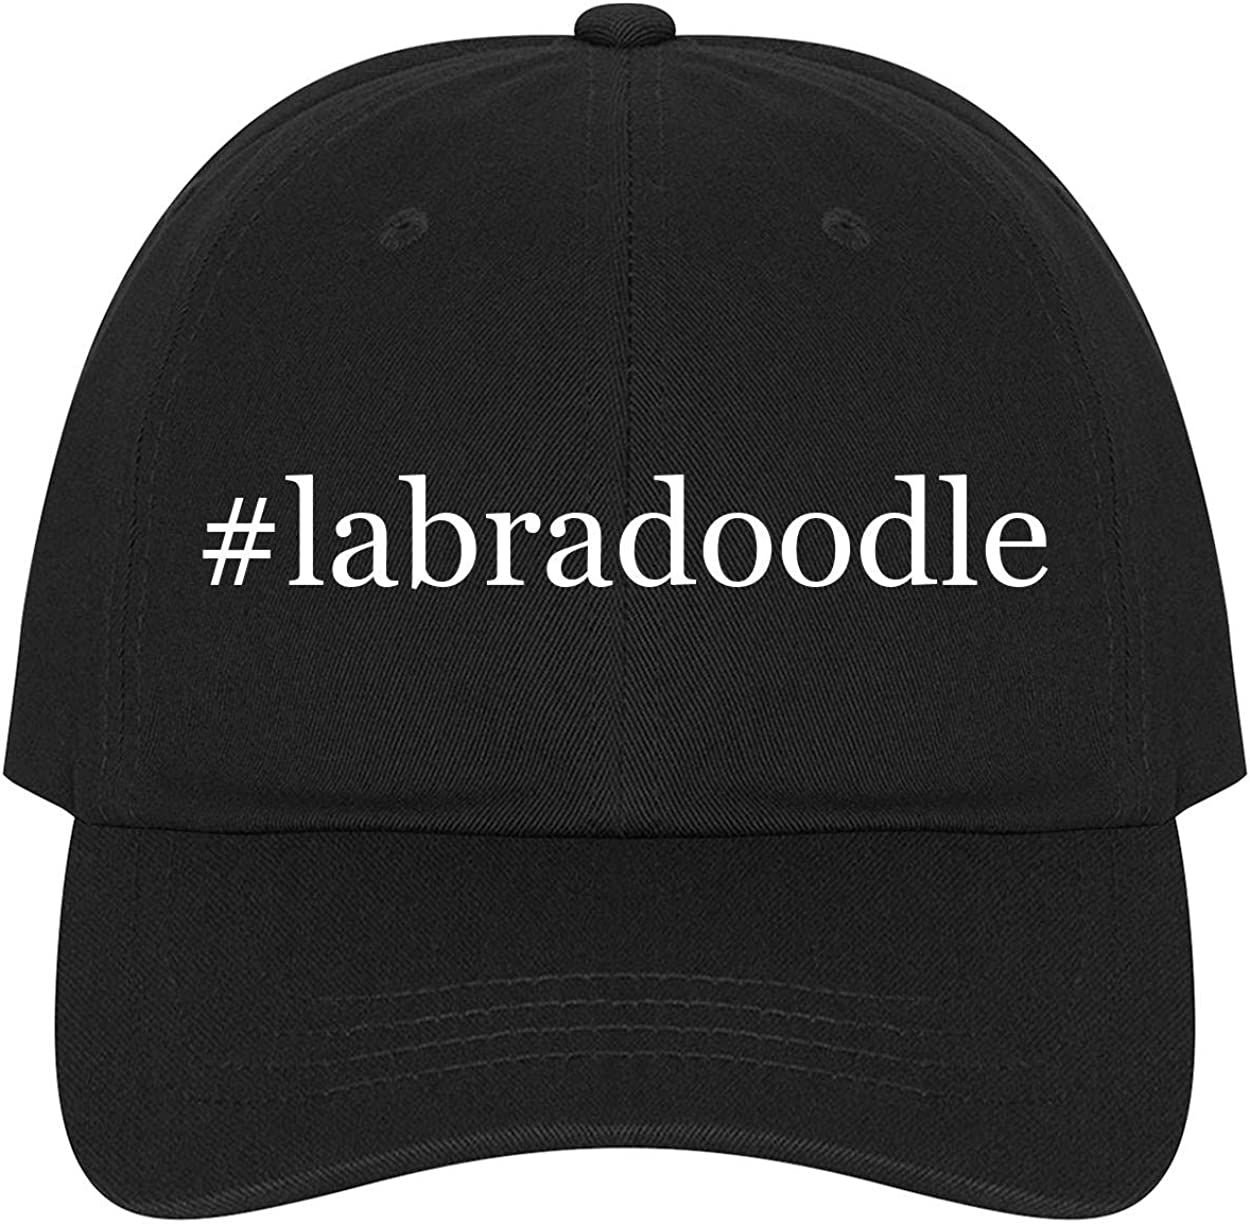 The Town Butler #Labradoodle A Nice Comfortable Adjustable Hashtag Dad Hat Cap